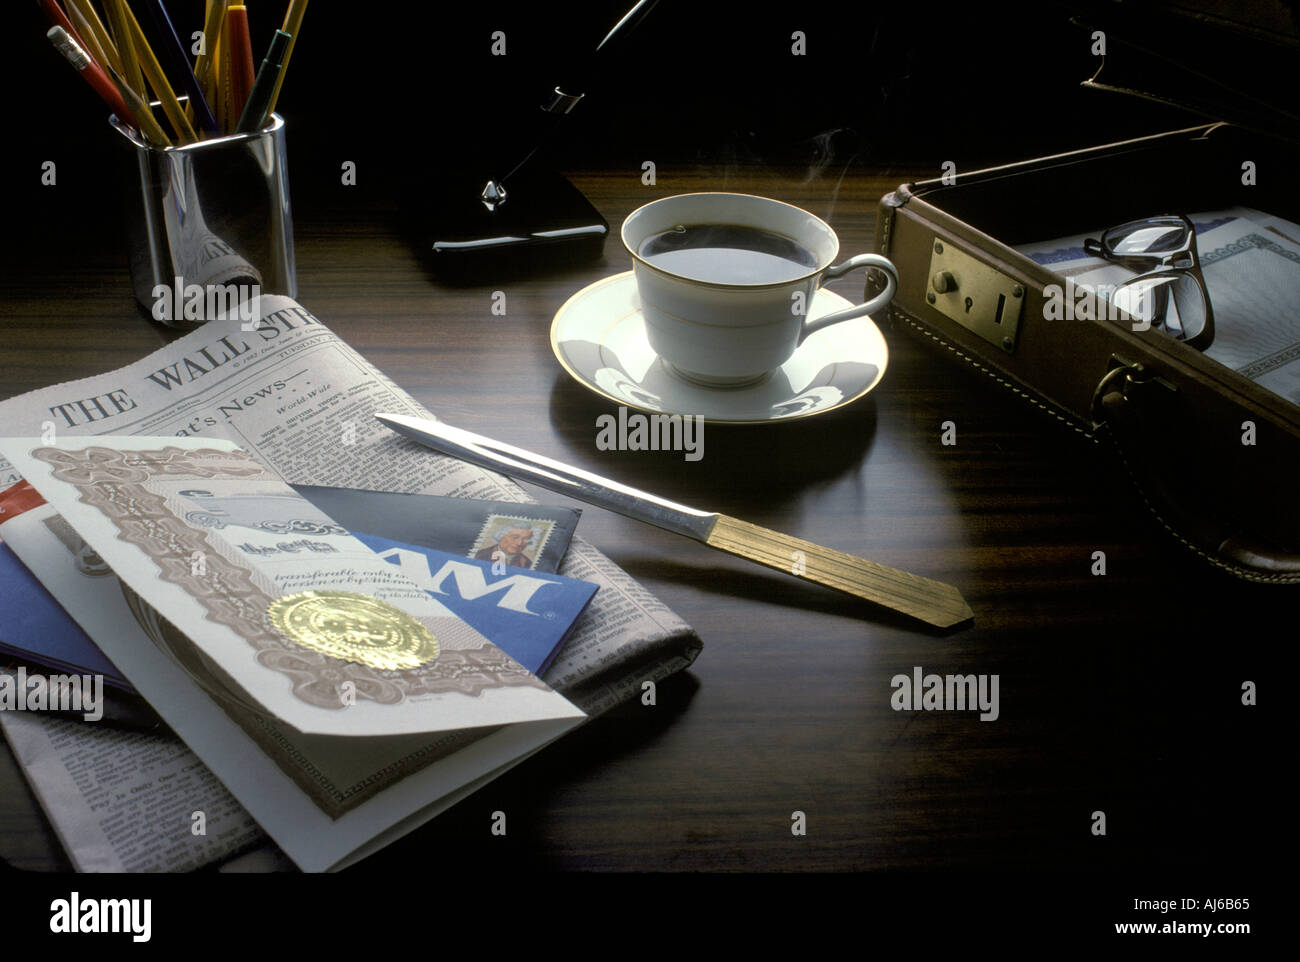 Desktop still life with stock certificate coffee cup letter opener Wall Street Journal and brief case - Stock Image